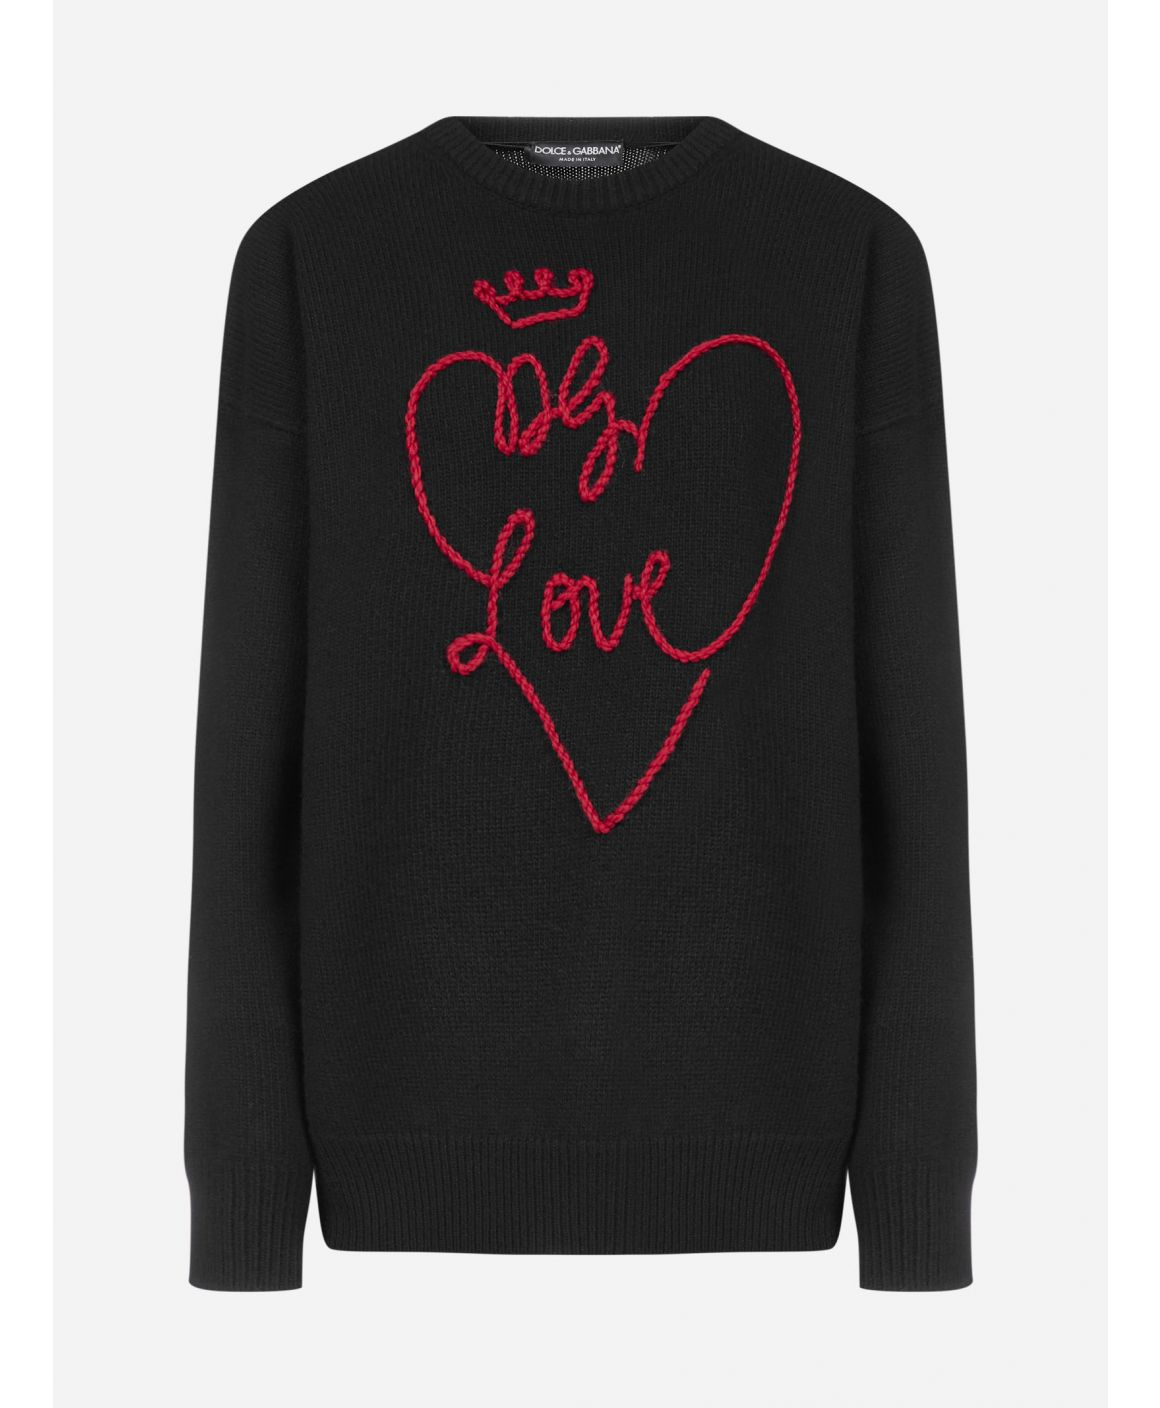 DG Love embroidery wool sweater